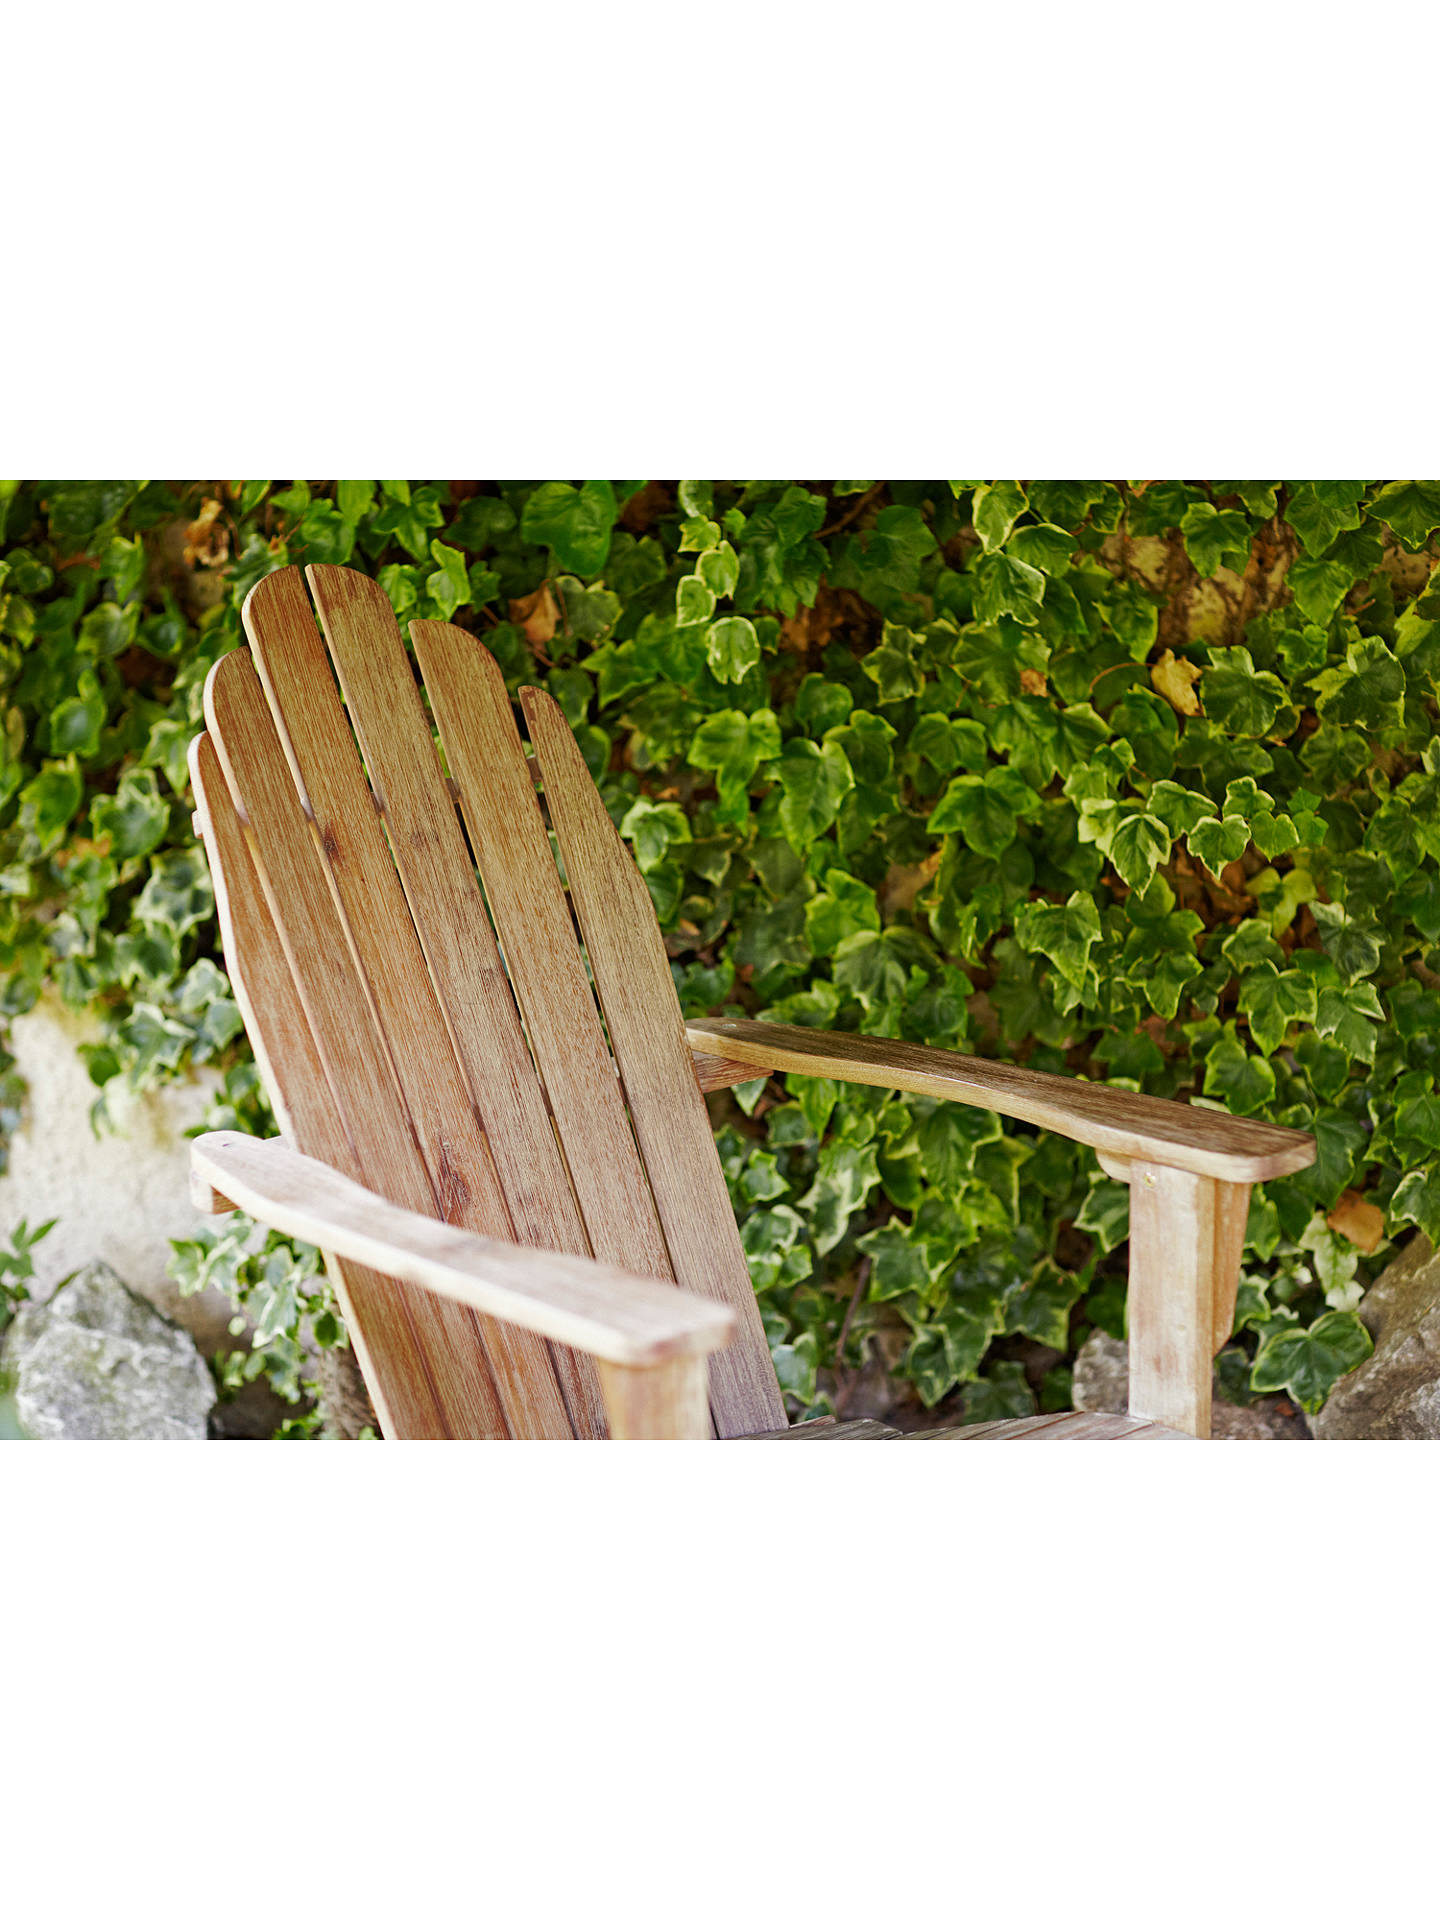 BuyLG Outdoor Hanoi Adirondack Chair, FSC-Certified (Acacia), Natural Online at johnlewis.com